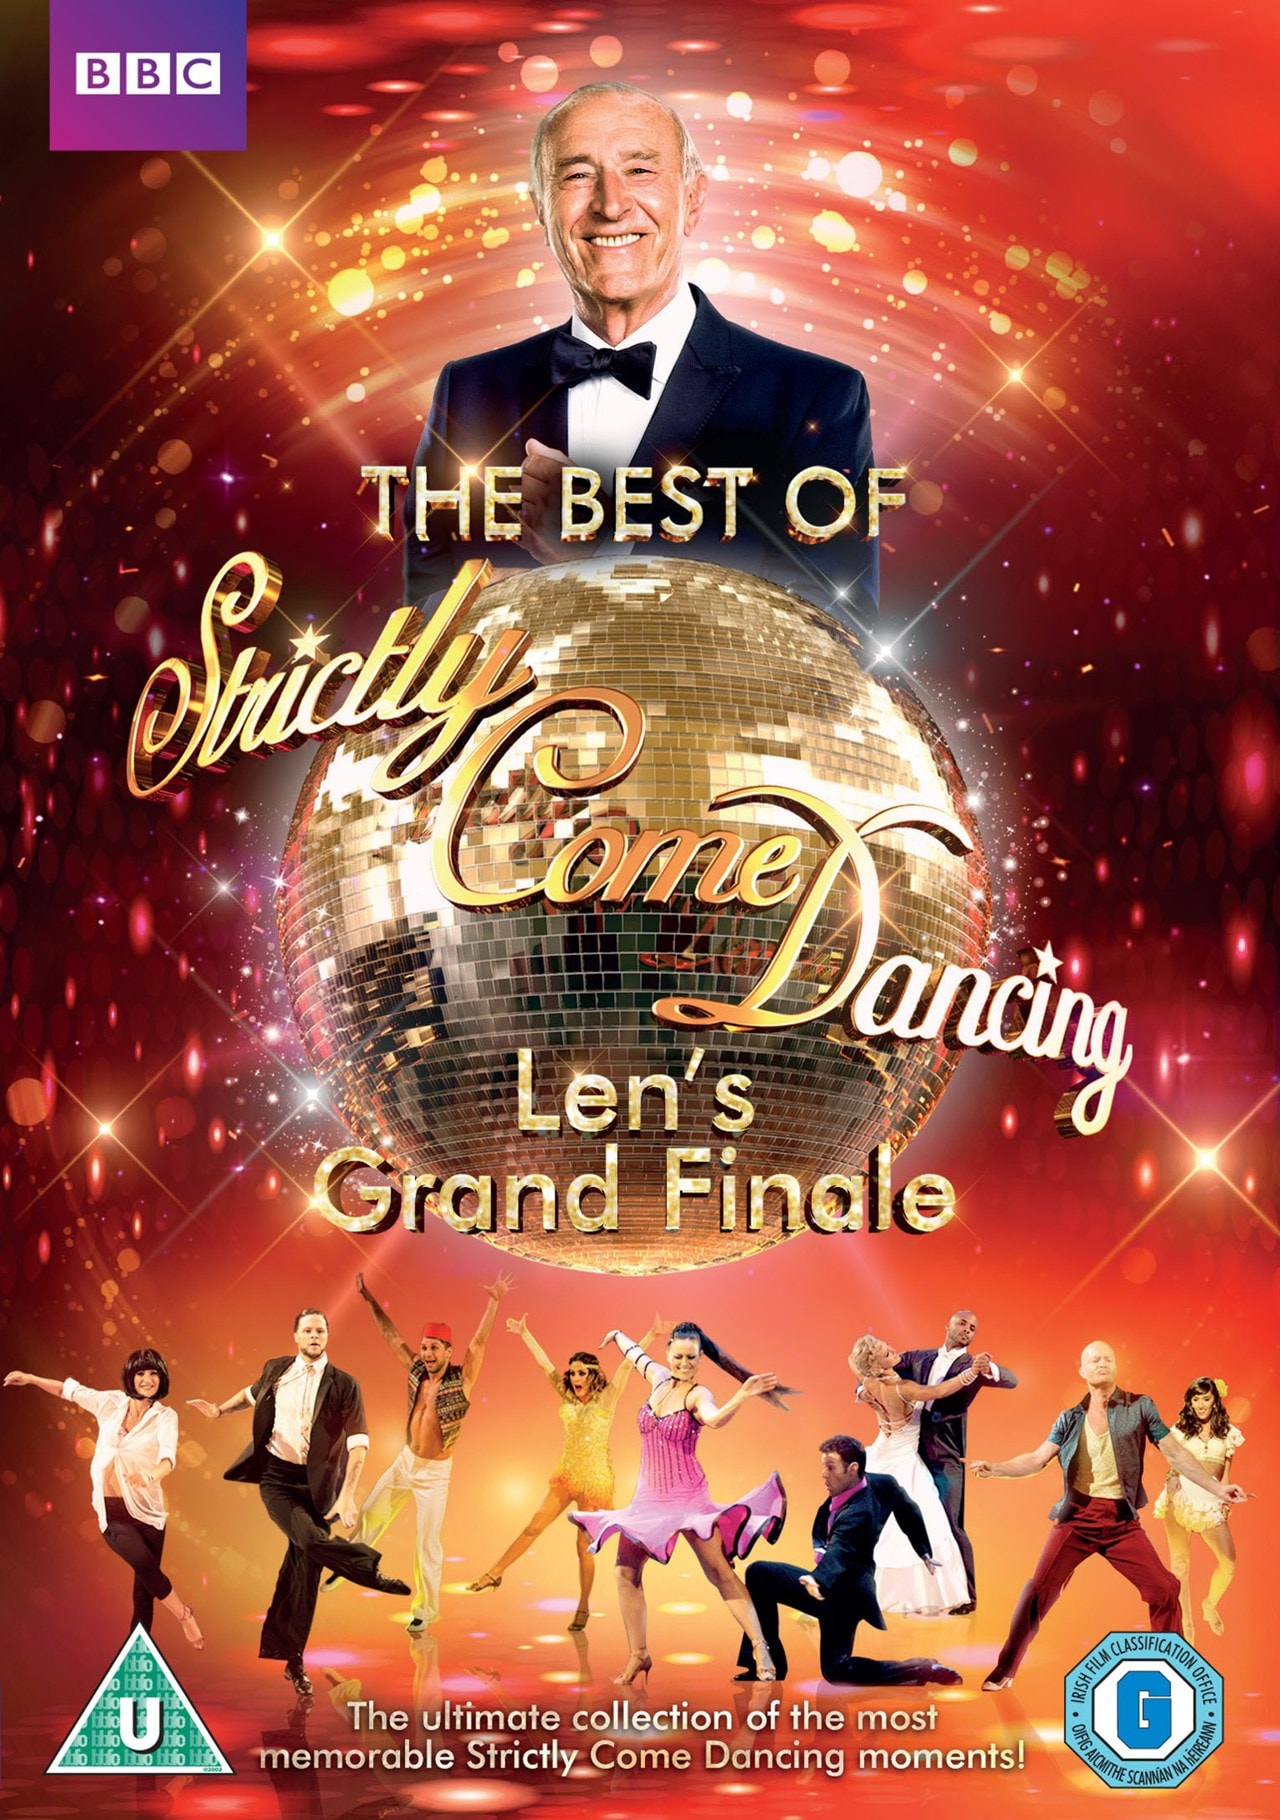 The Best of Strictly Come Dancing - Len's Grand Finale - 1